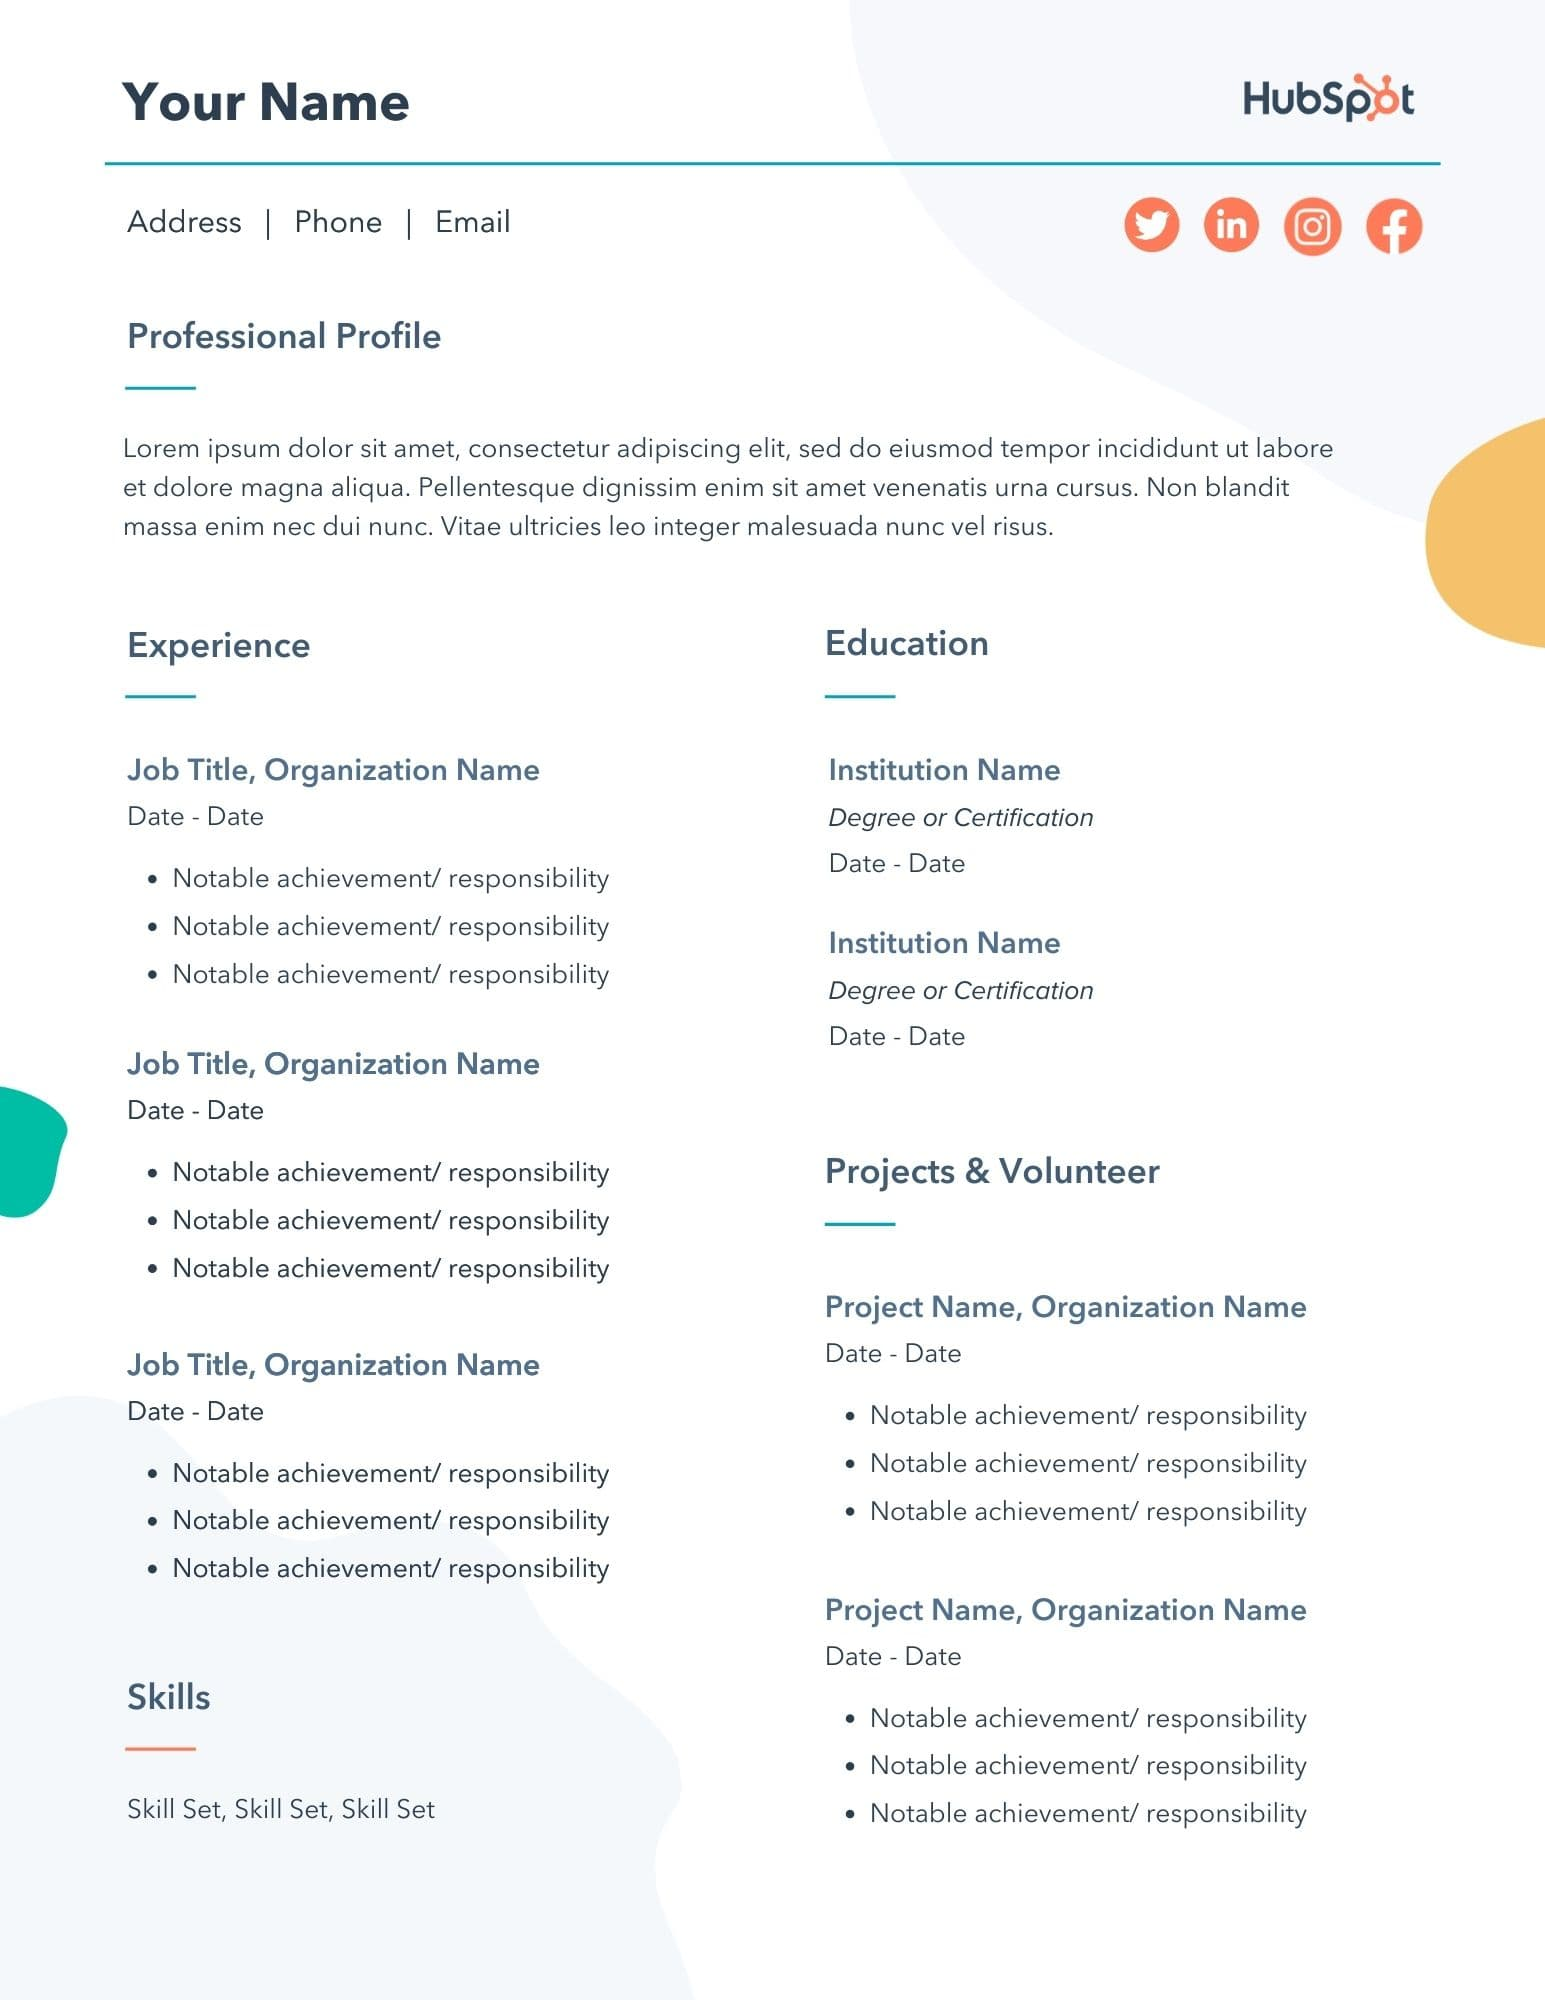 free resume templates for microsoft word to make your own professional template work Resume Professional Resume Template